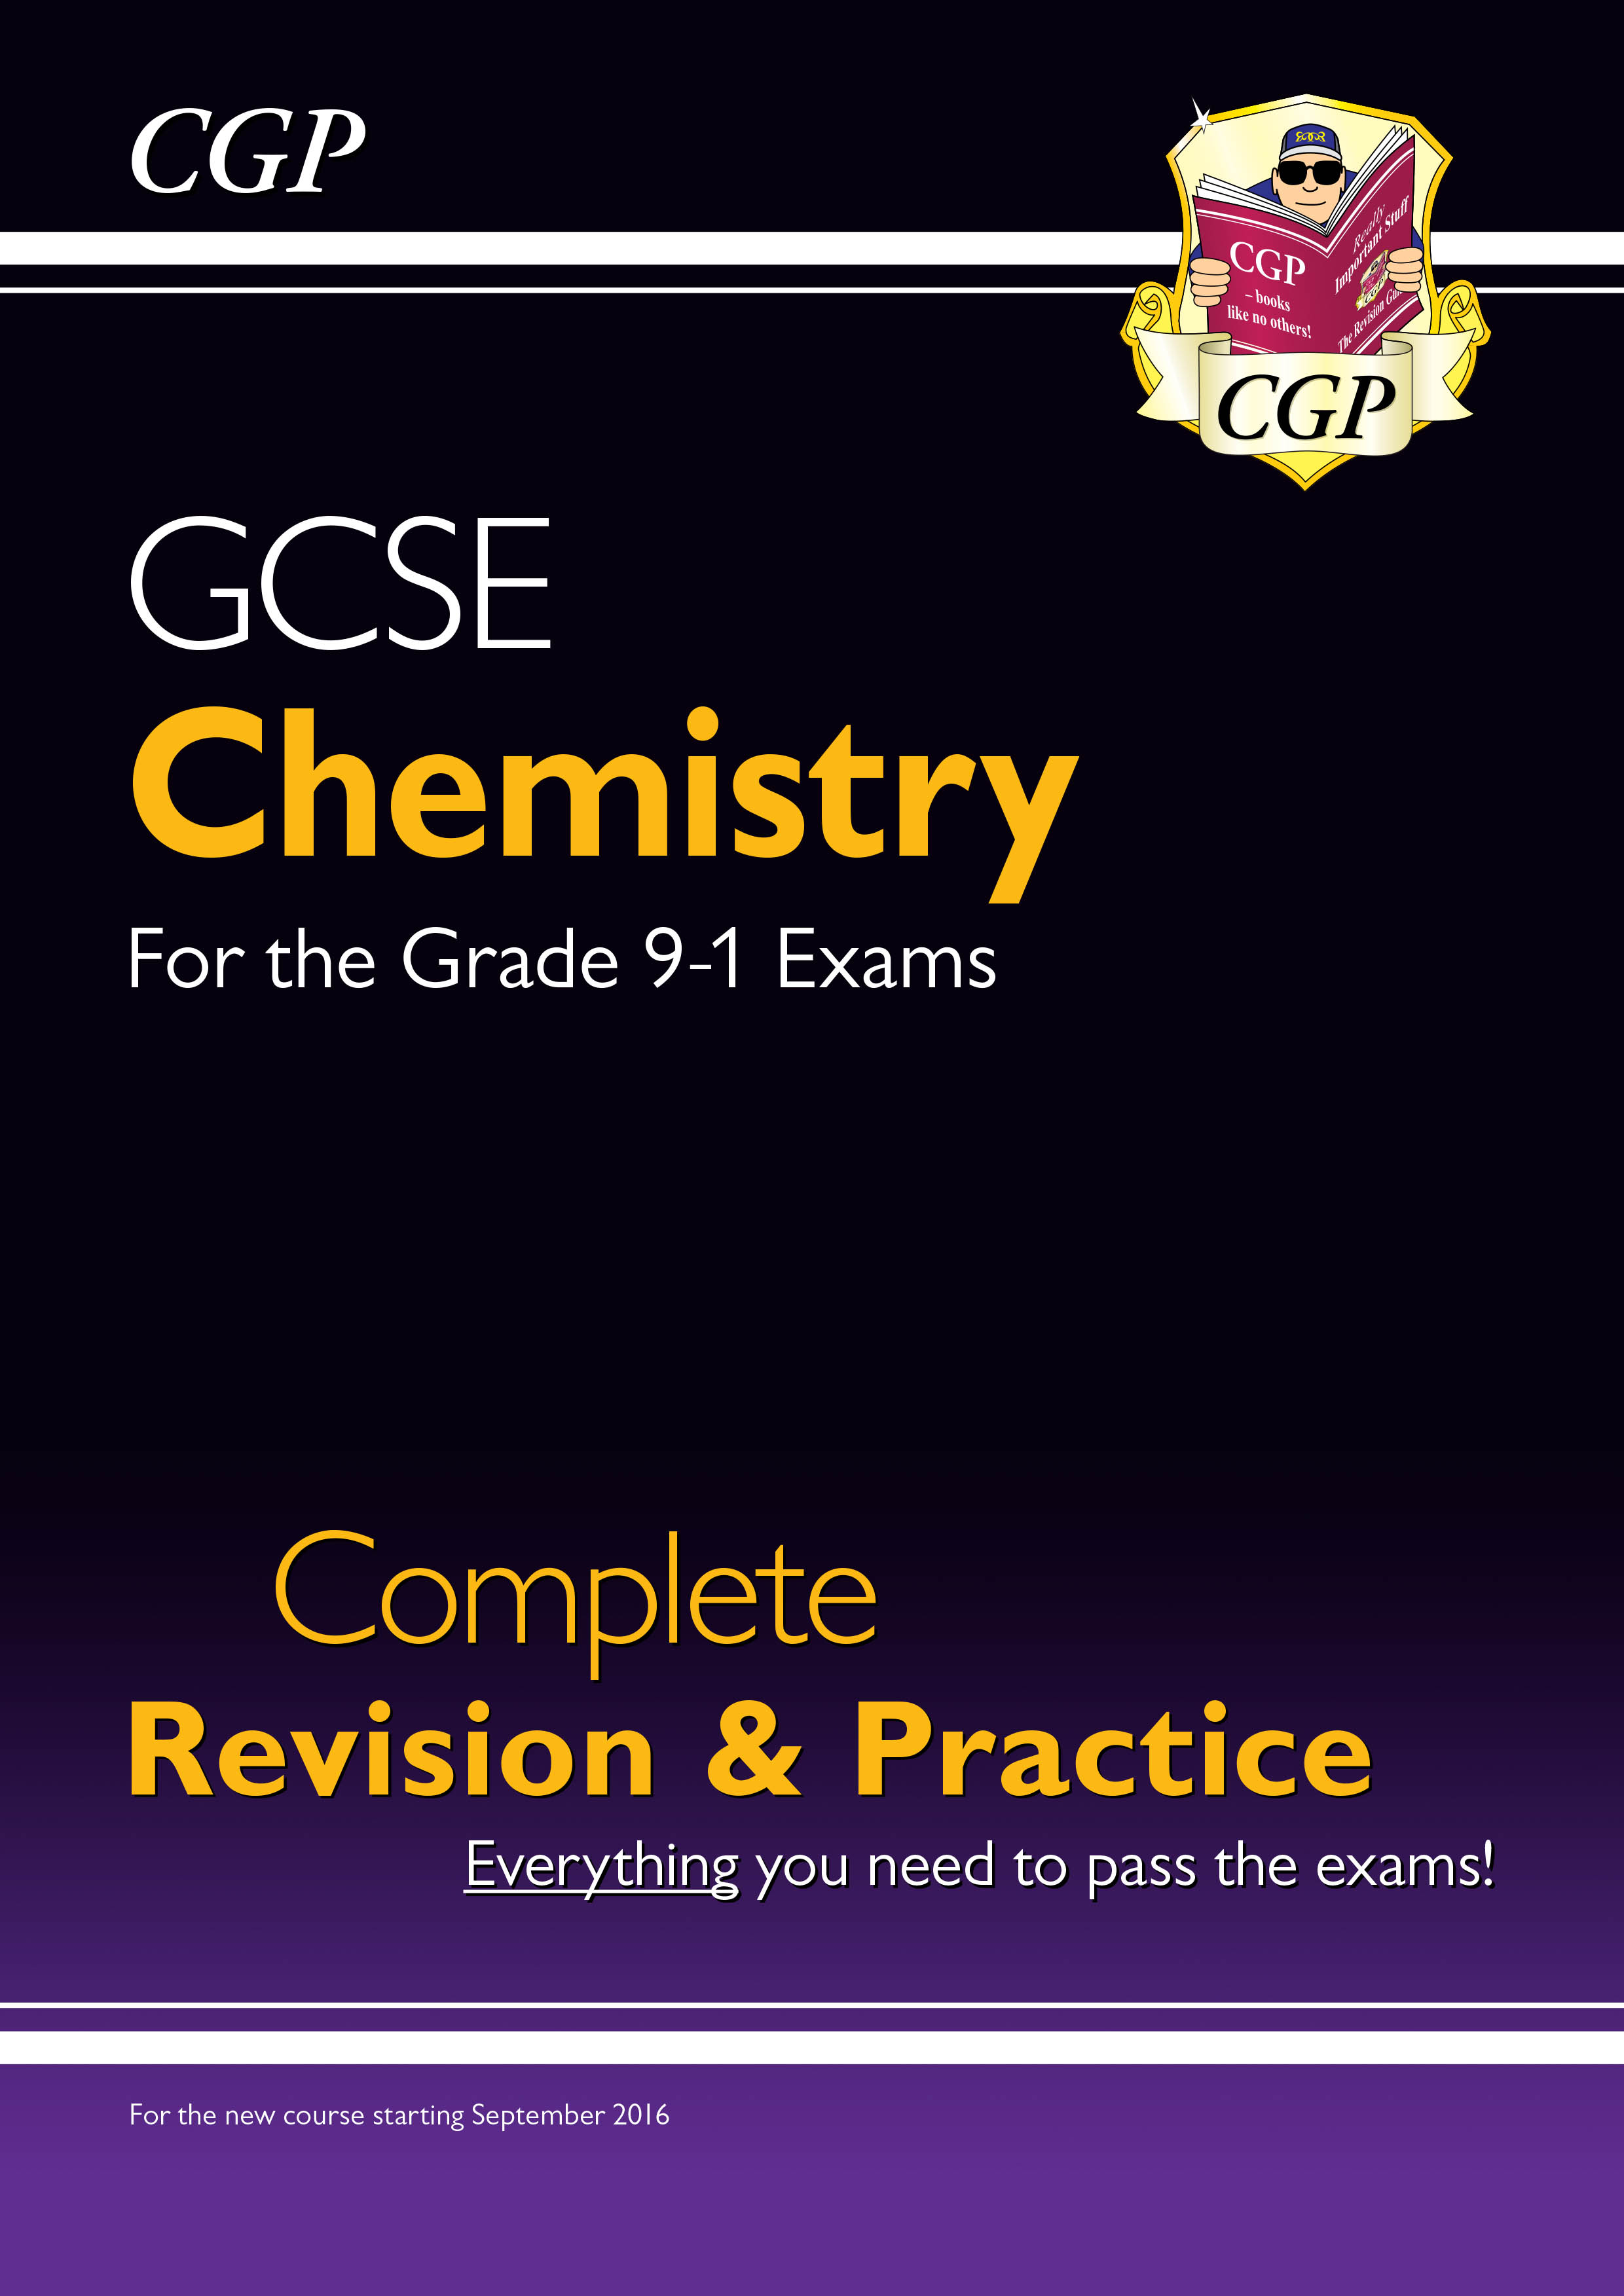 CHS45DK - New Grade 9-1 GCSE Chemistry Complete Revision & Practice